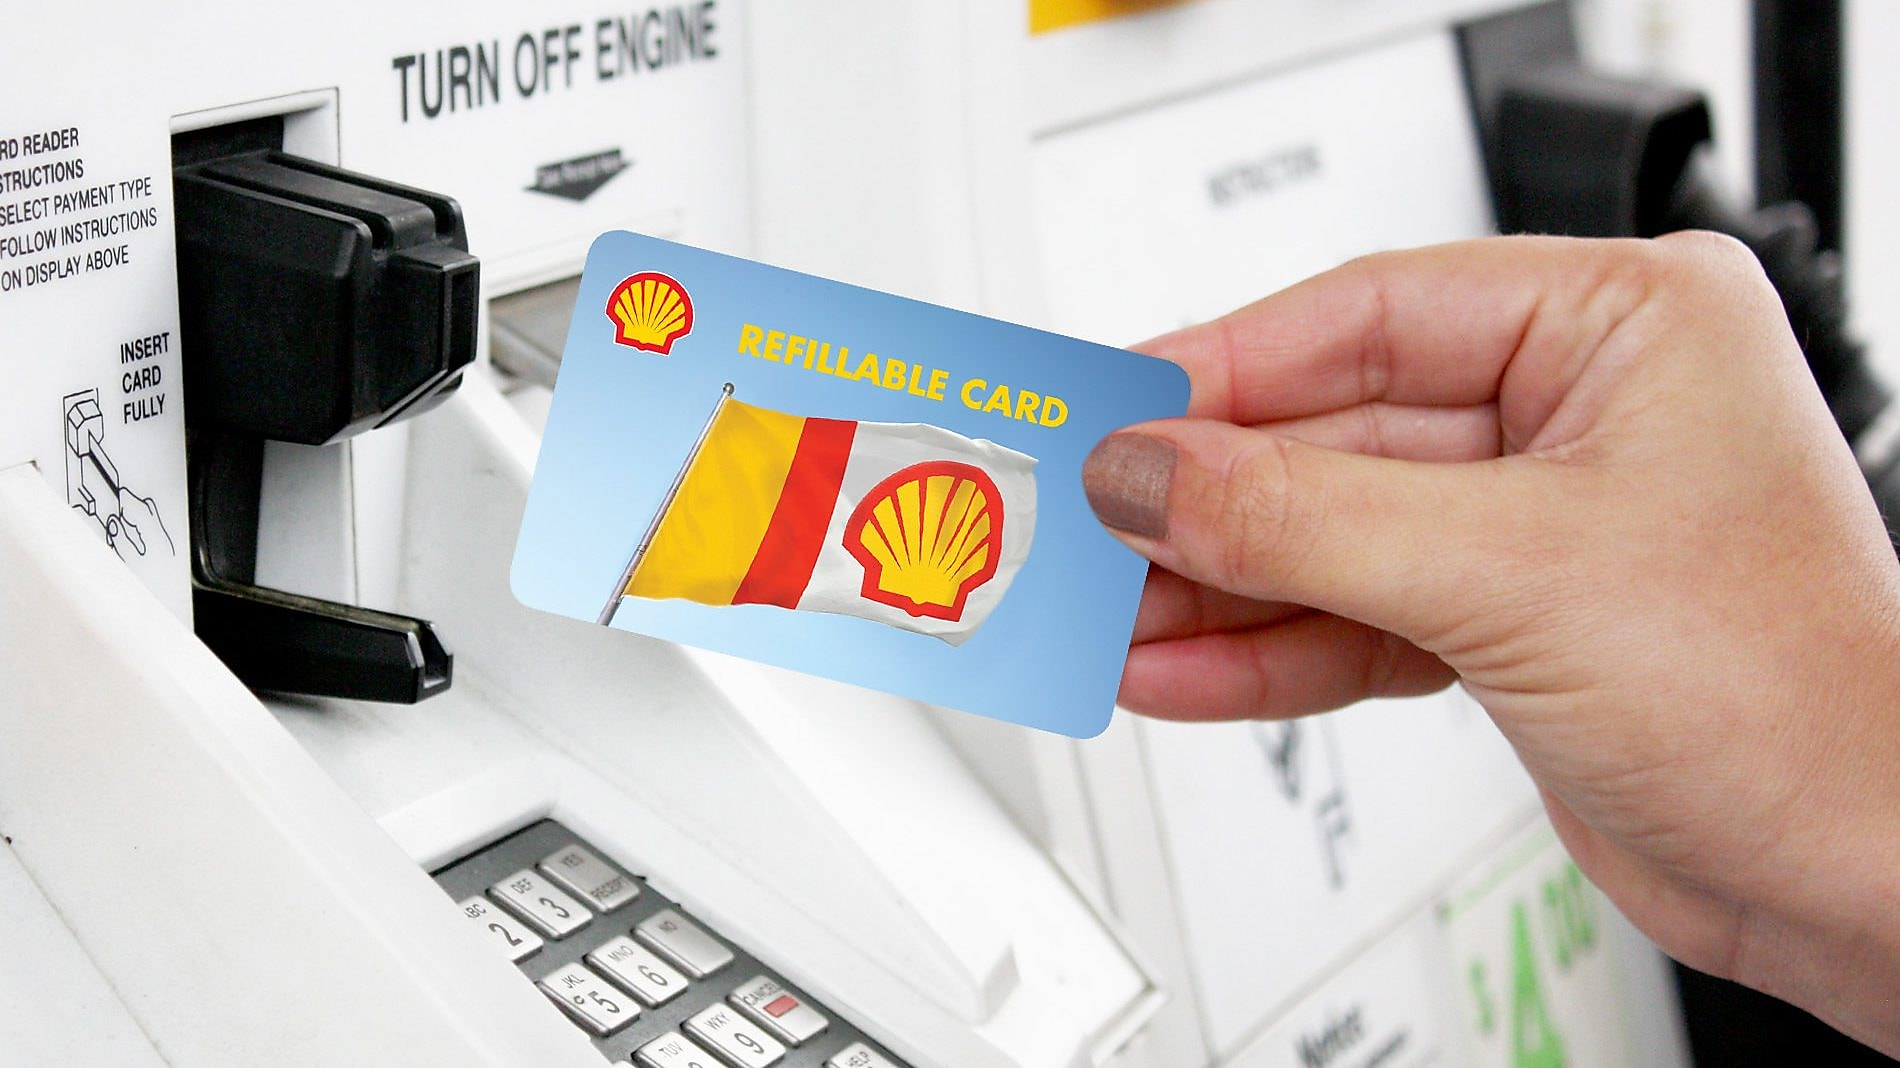 Shell Refillable Card | Shell United States